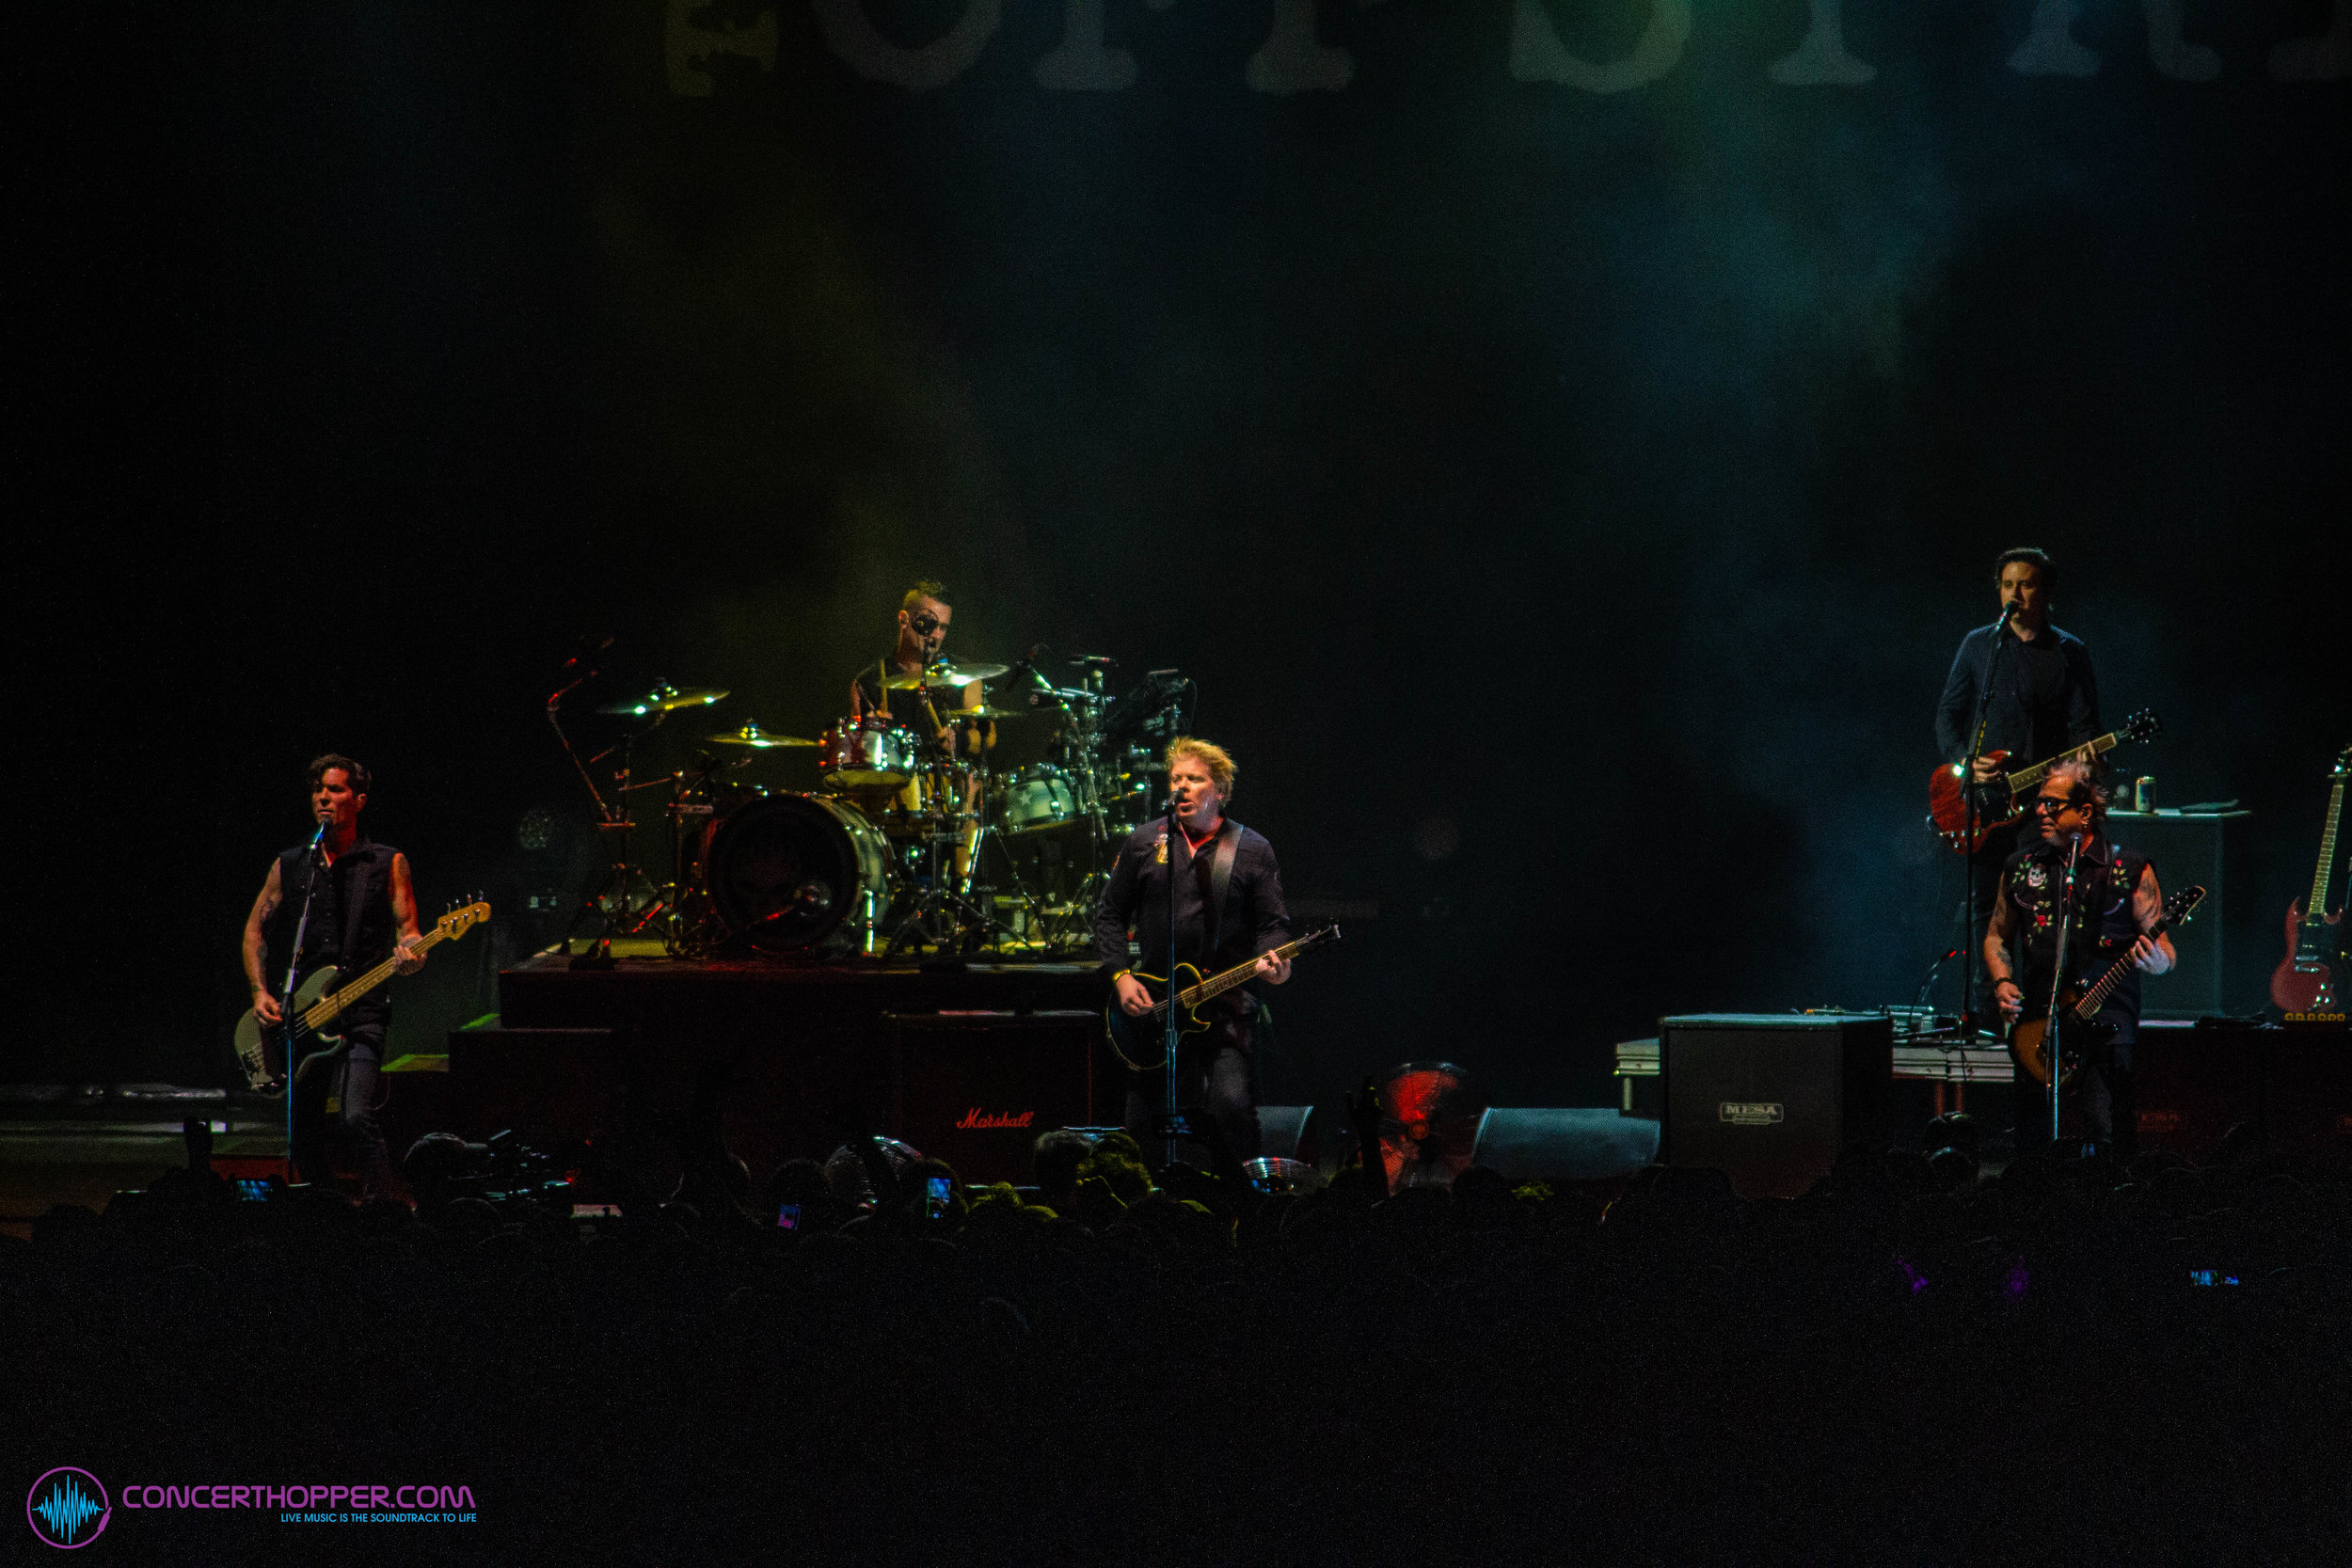 The Offspring performing at Camp Anarchy 2019 - Photo by Kade Martin, Concert Hopper